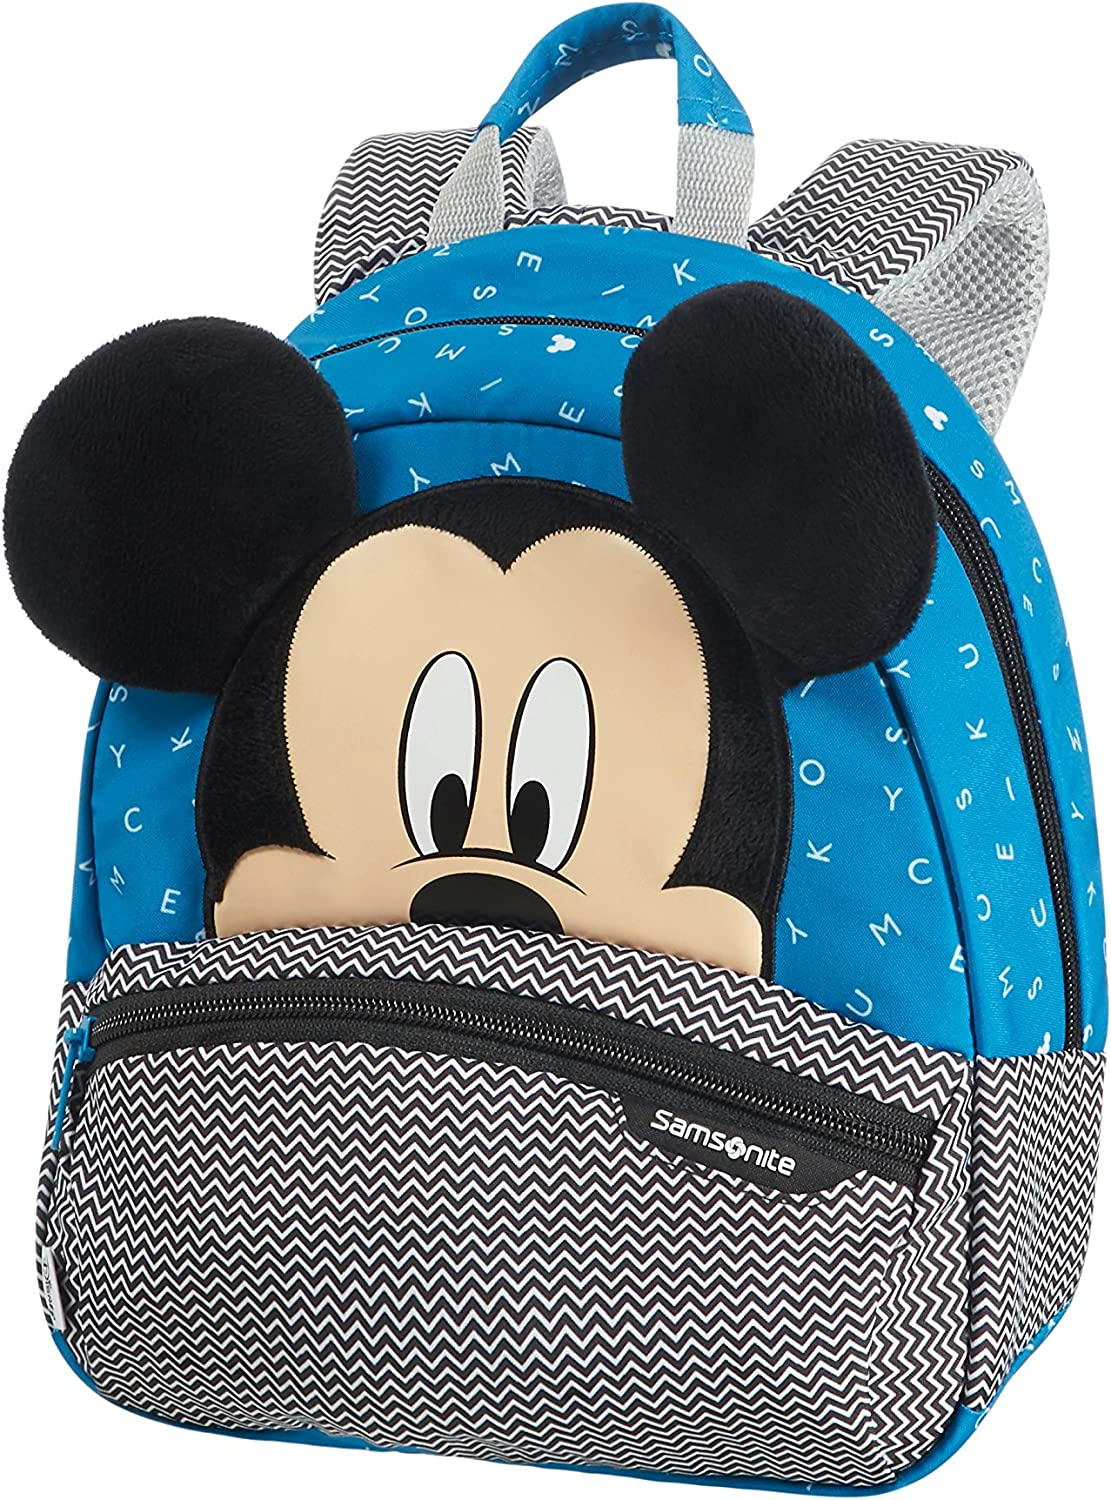 Samsonite Disney Ultimate 2.0 - Mochila Infantil, 7 l, Multicolor (Mickey Letters), S (28.5 x 23.5 x 13.5 cm)